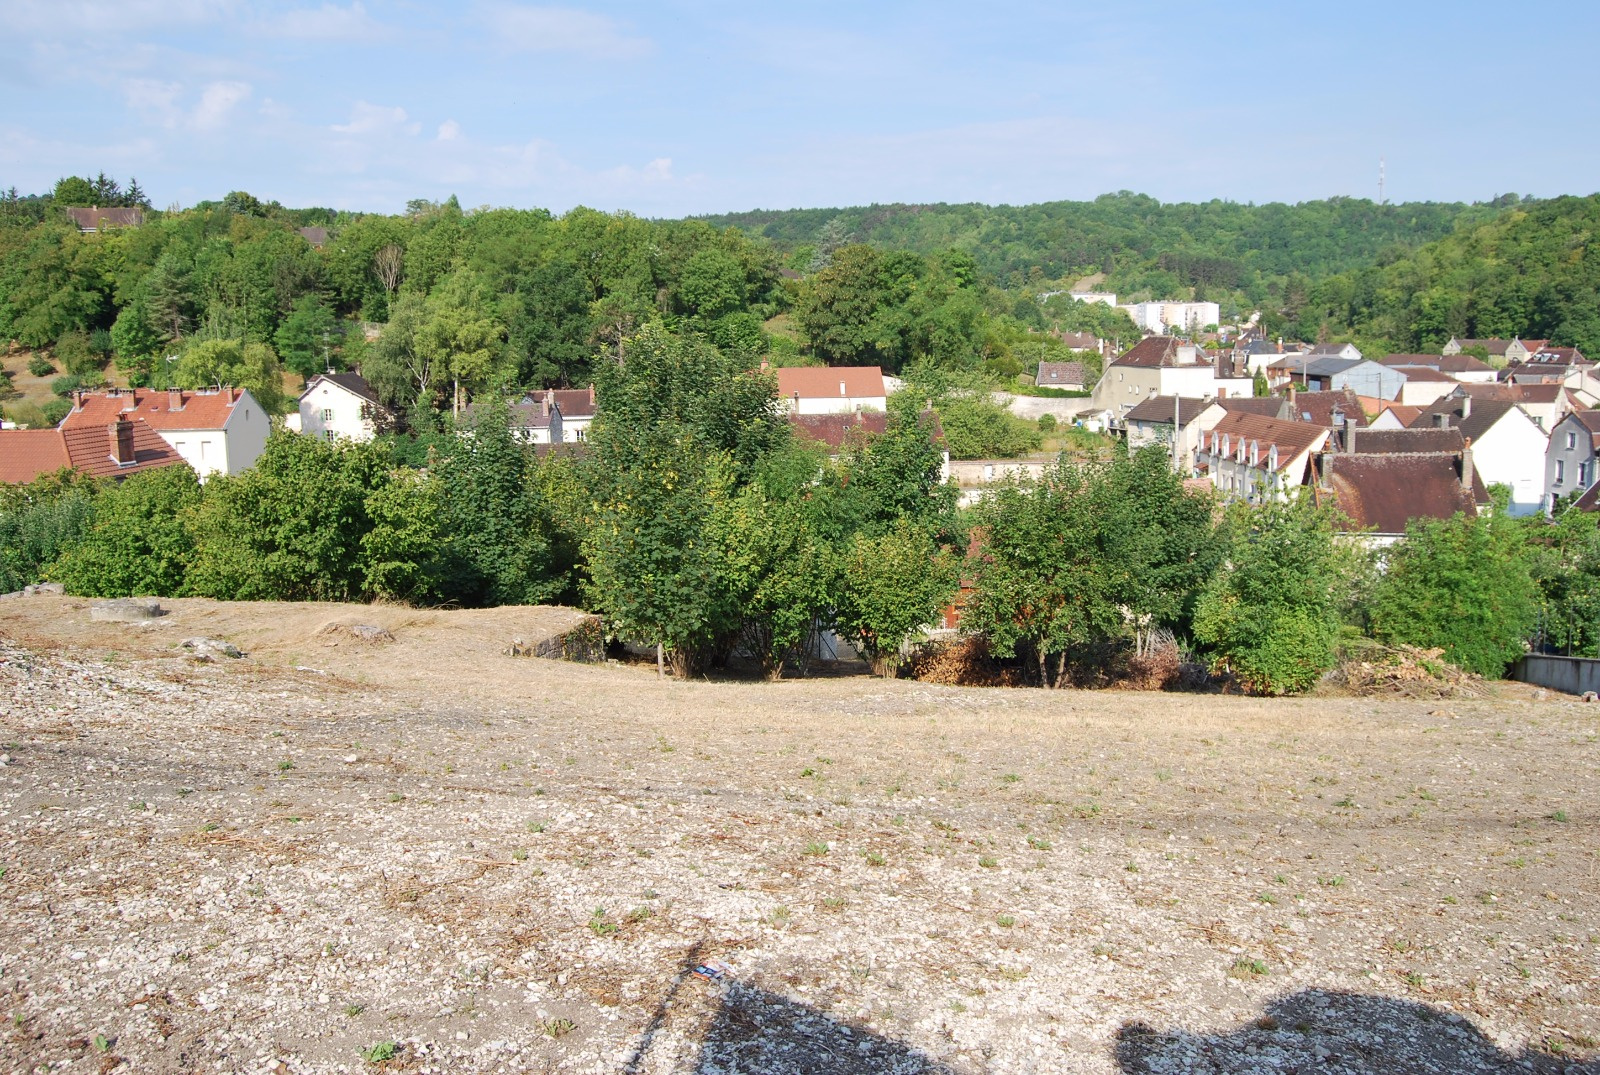 Vente terrain constructible de 1110m for Terrain constructible